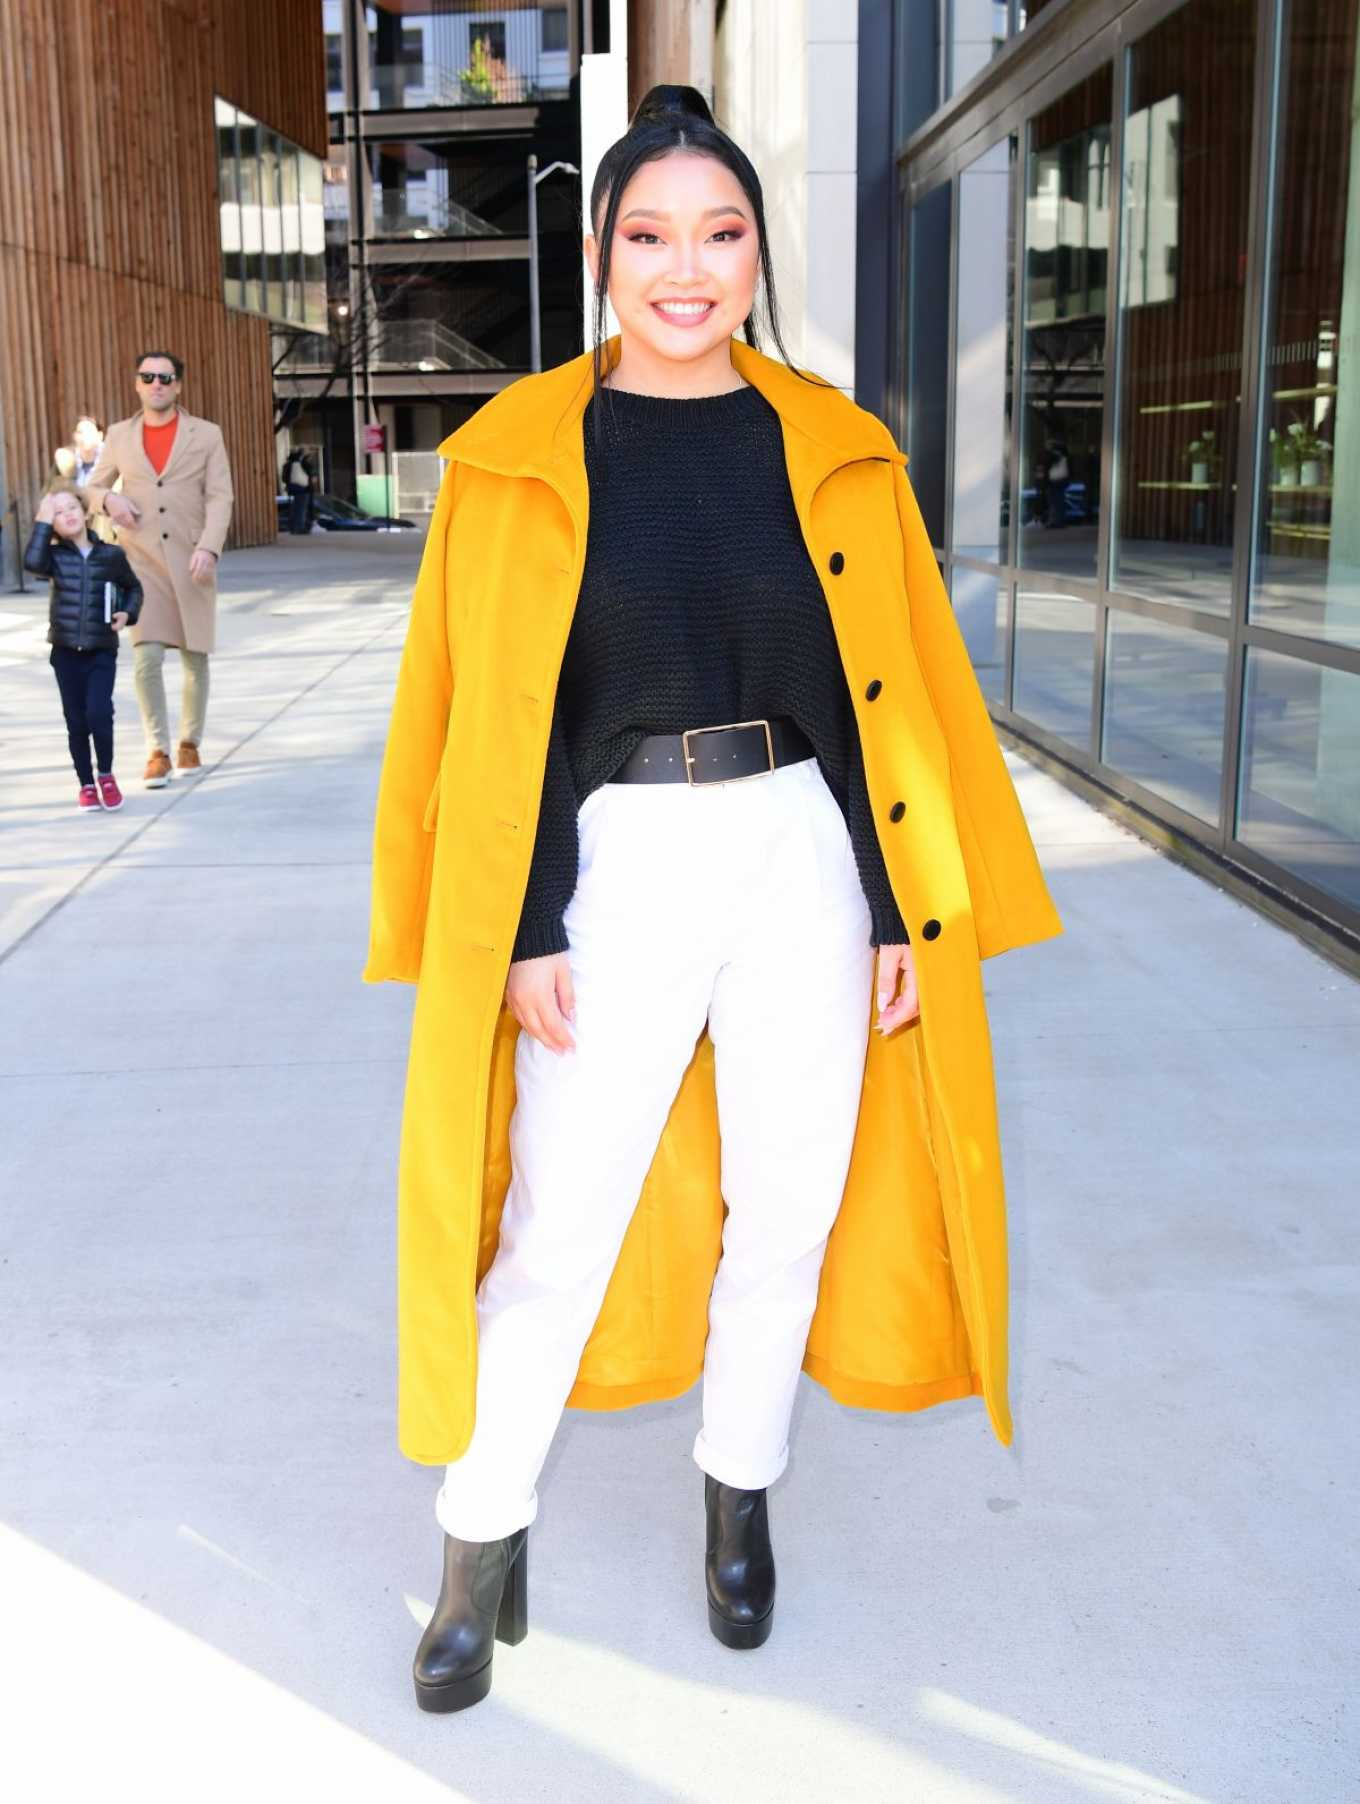 Lana Condor In a yellow coat posing while out in NYC